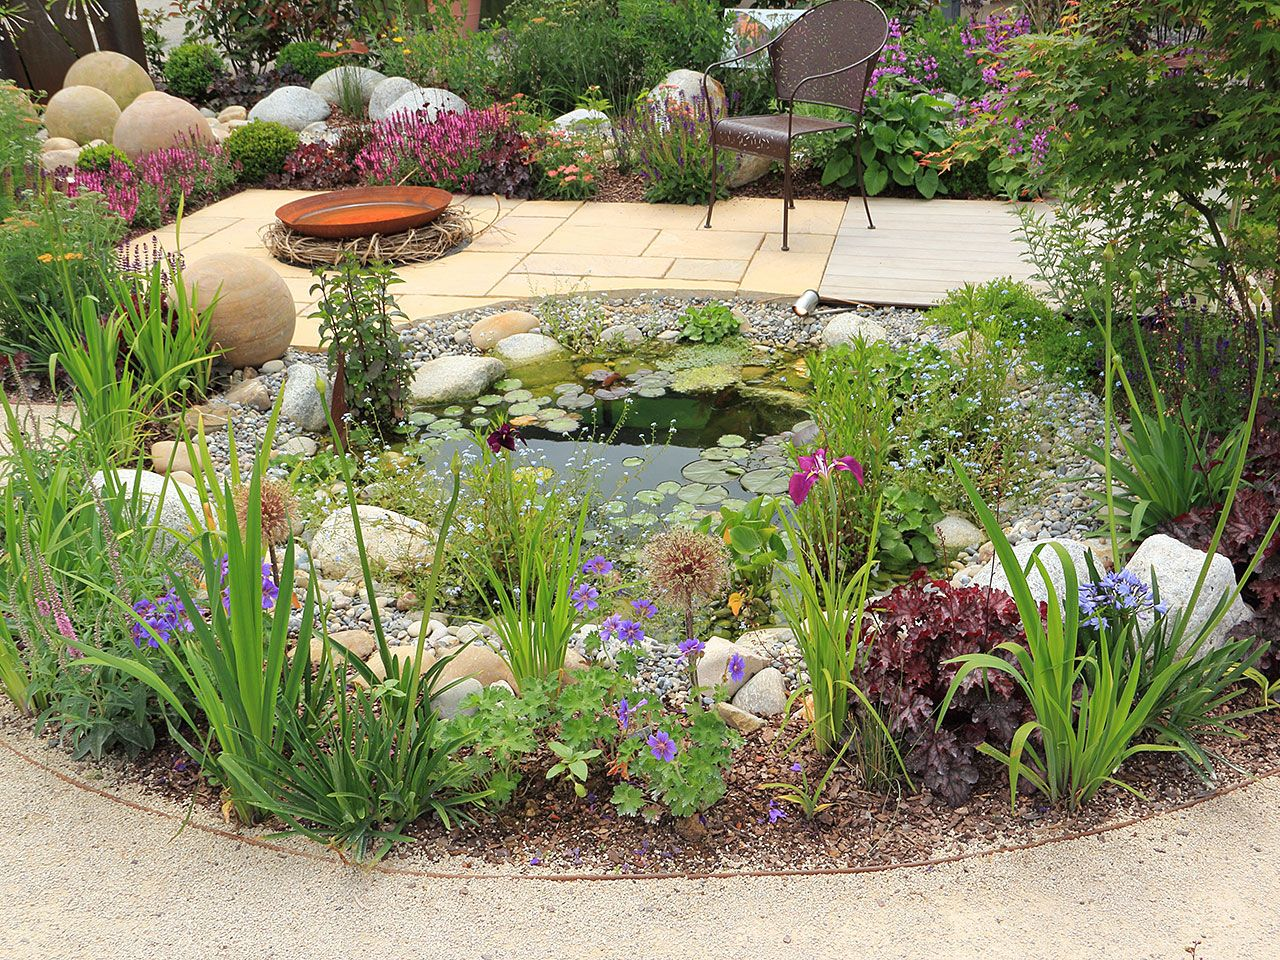 Small Garden Pond Ideas small backyard pond designs backyard pond design ideas 21 charming small garden pond design ideas exteriors Garden Pond With Flowers And Shrubs